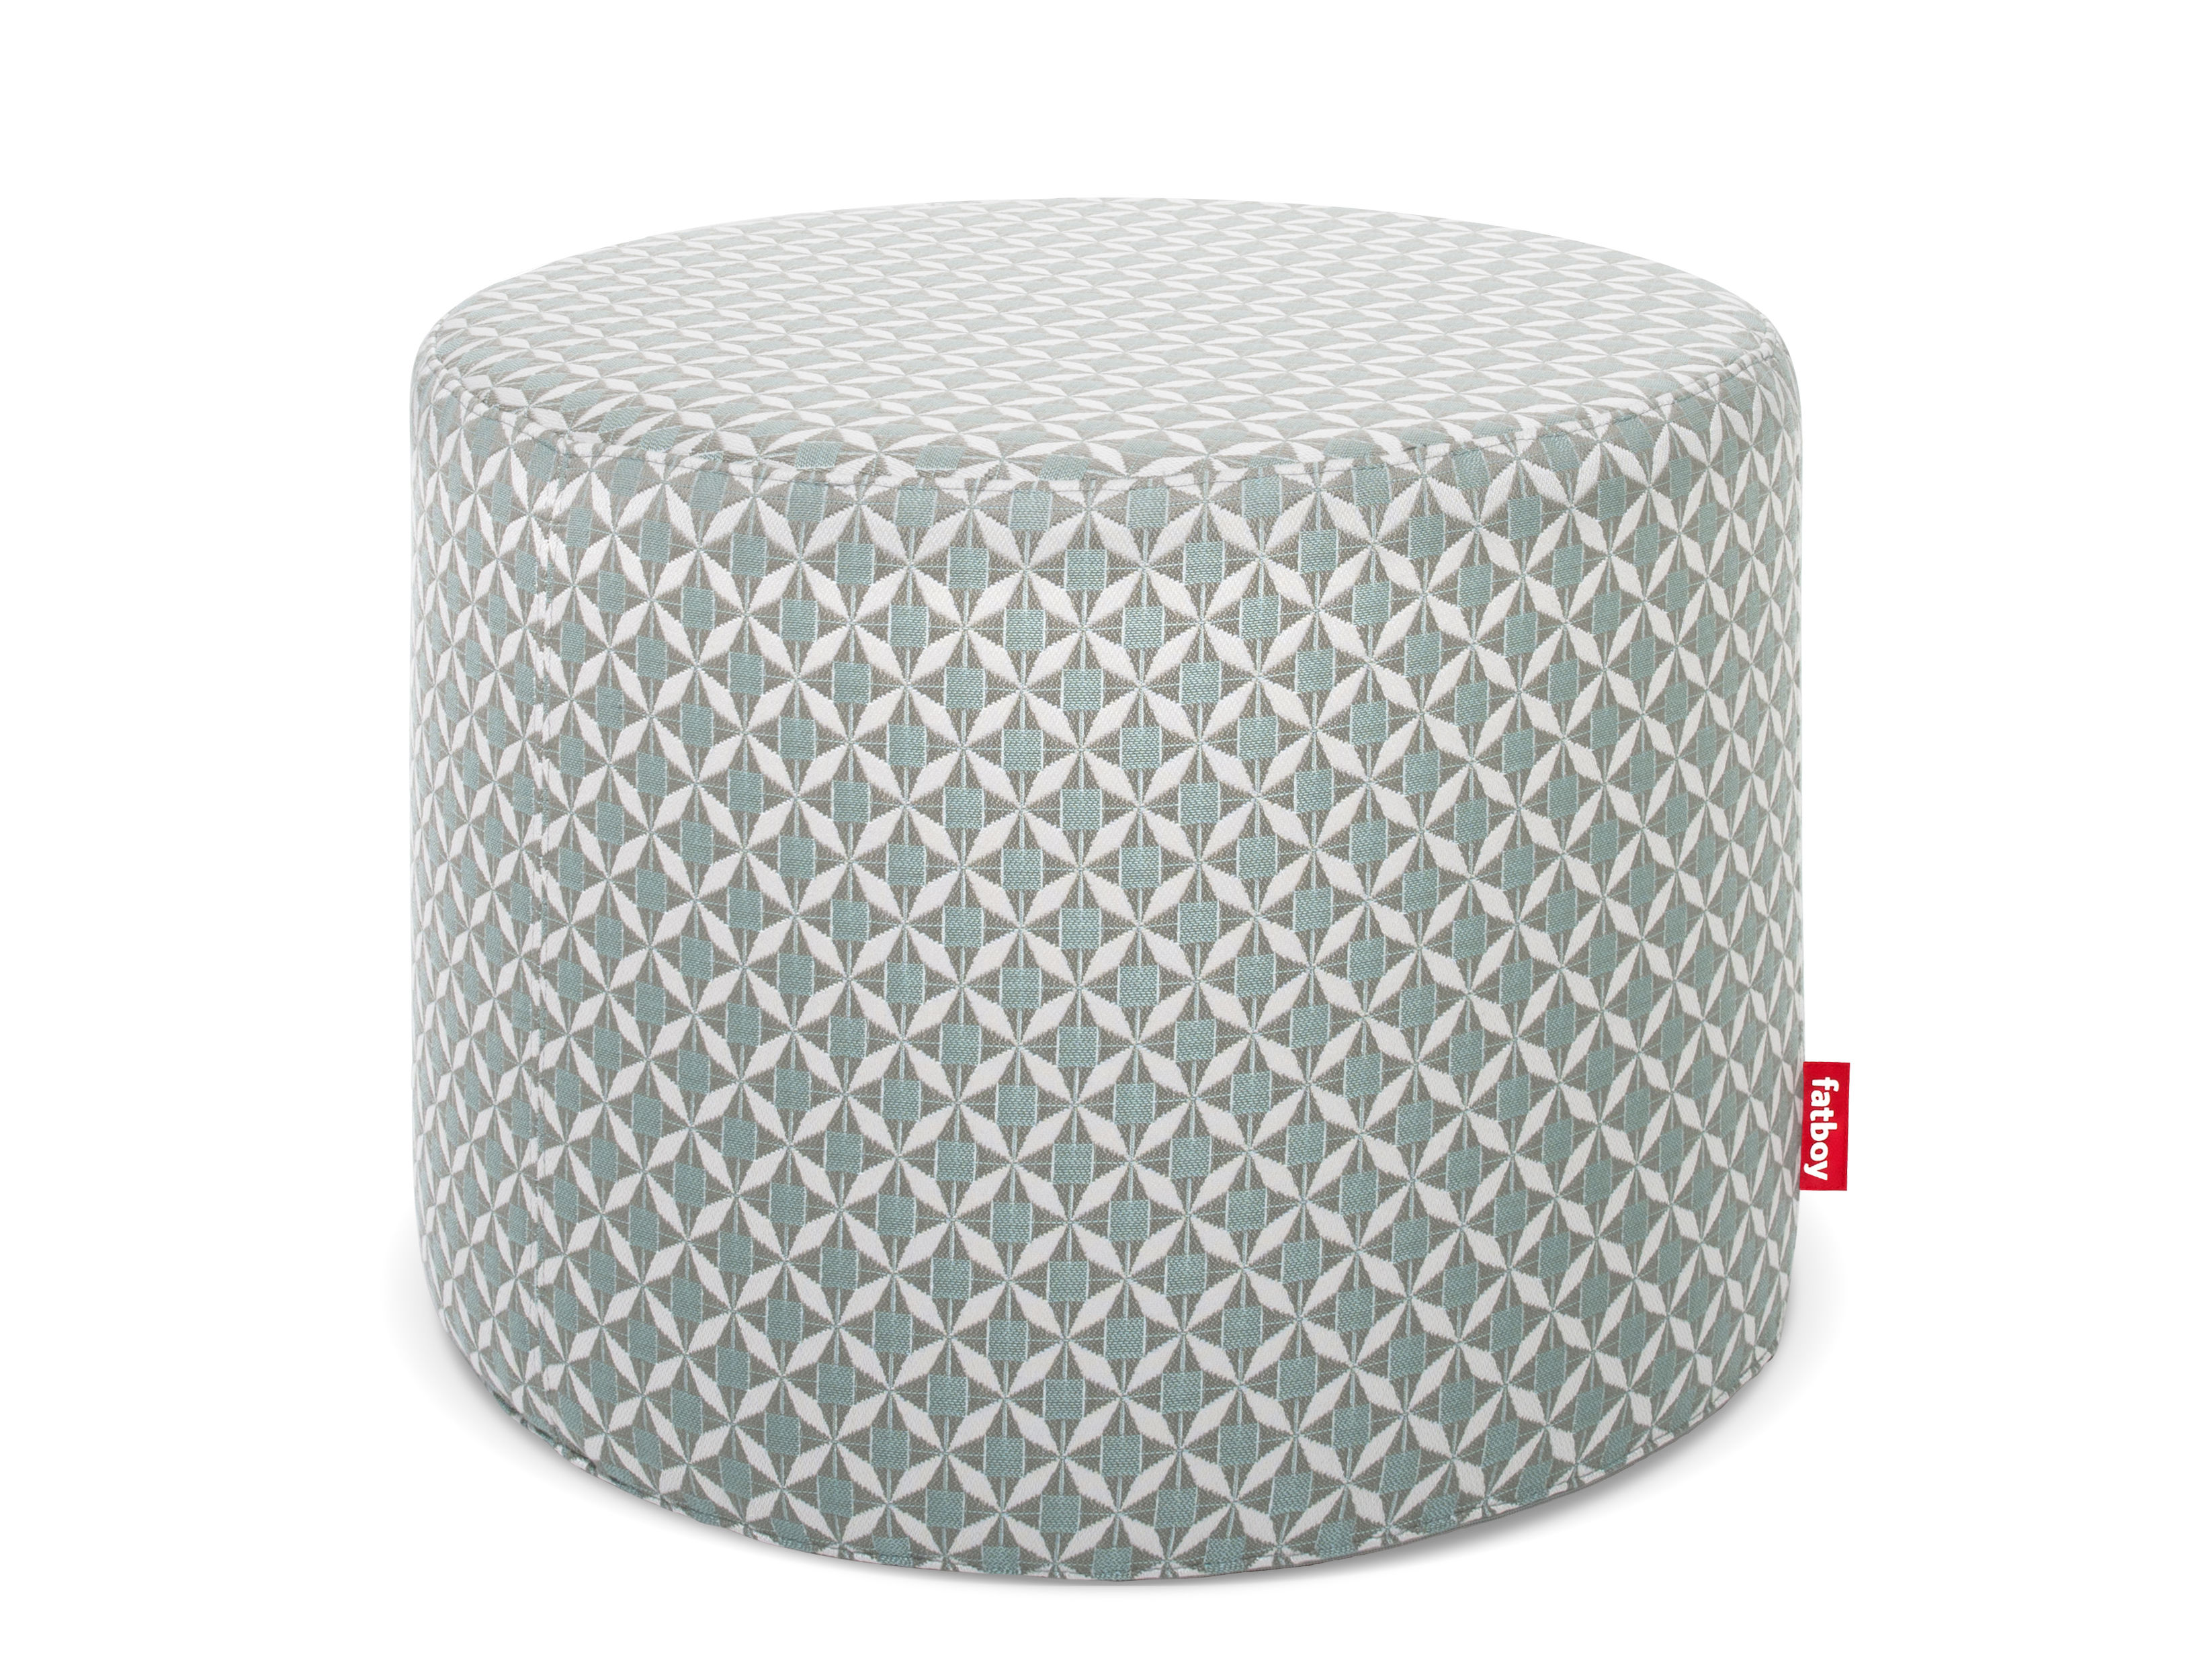 Furniture - Poufs & Floor Cushions - Rondeju Pouf - / For outdoors - Ø 61 by Fatboy - Mosaic / Blue - Foam, Polymer, Sunbrella fabric, Thermoplastic